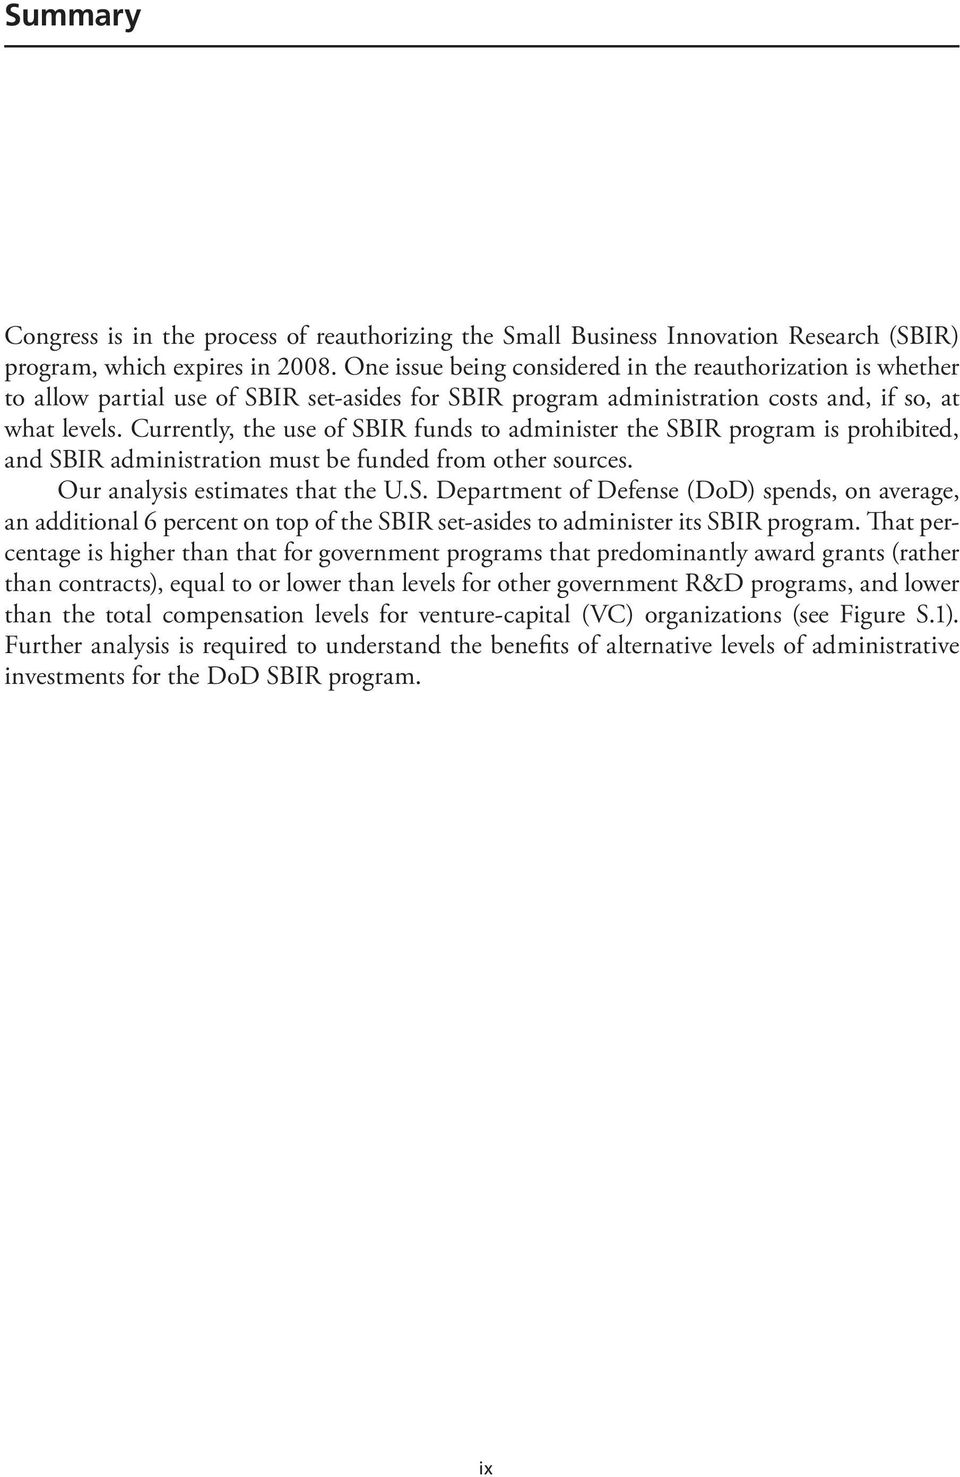 Currently, the use of SBIR funds to administer the SBIR program is prohibited, and SBIR administration must be funded from other sources. Our analysis estimates that the U.S. Department of Defense (DoD) spends, on average, an additional 6 percent on top of the SBIR set-asides to administer its SBIR program.